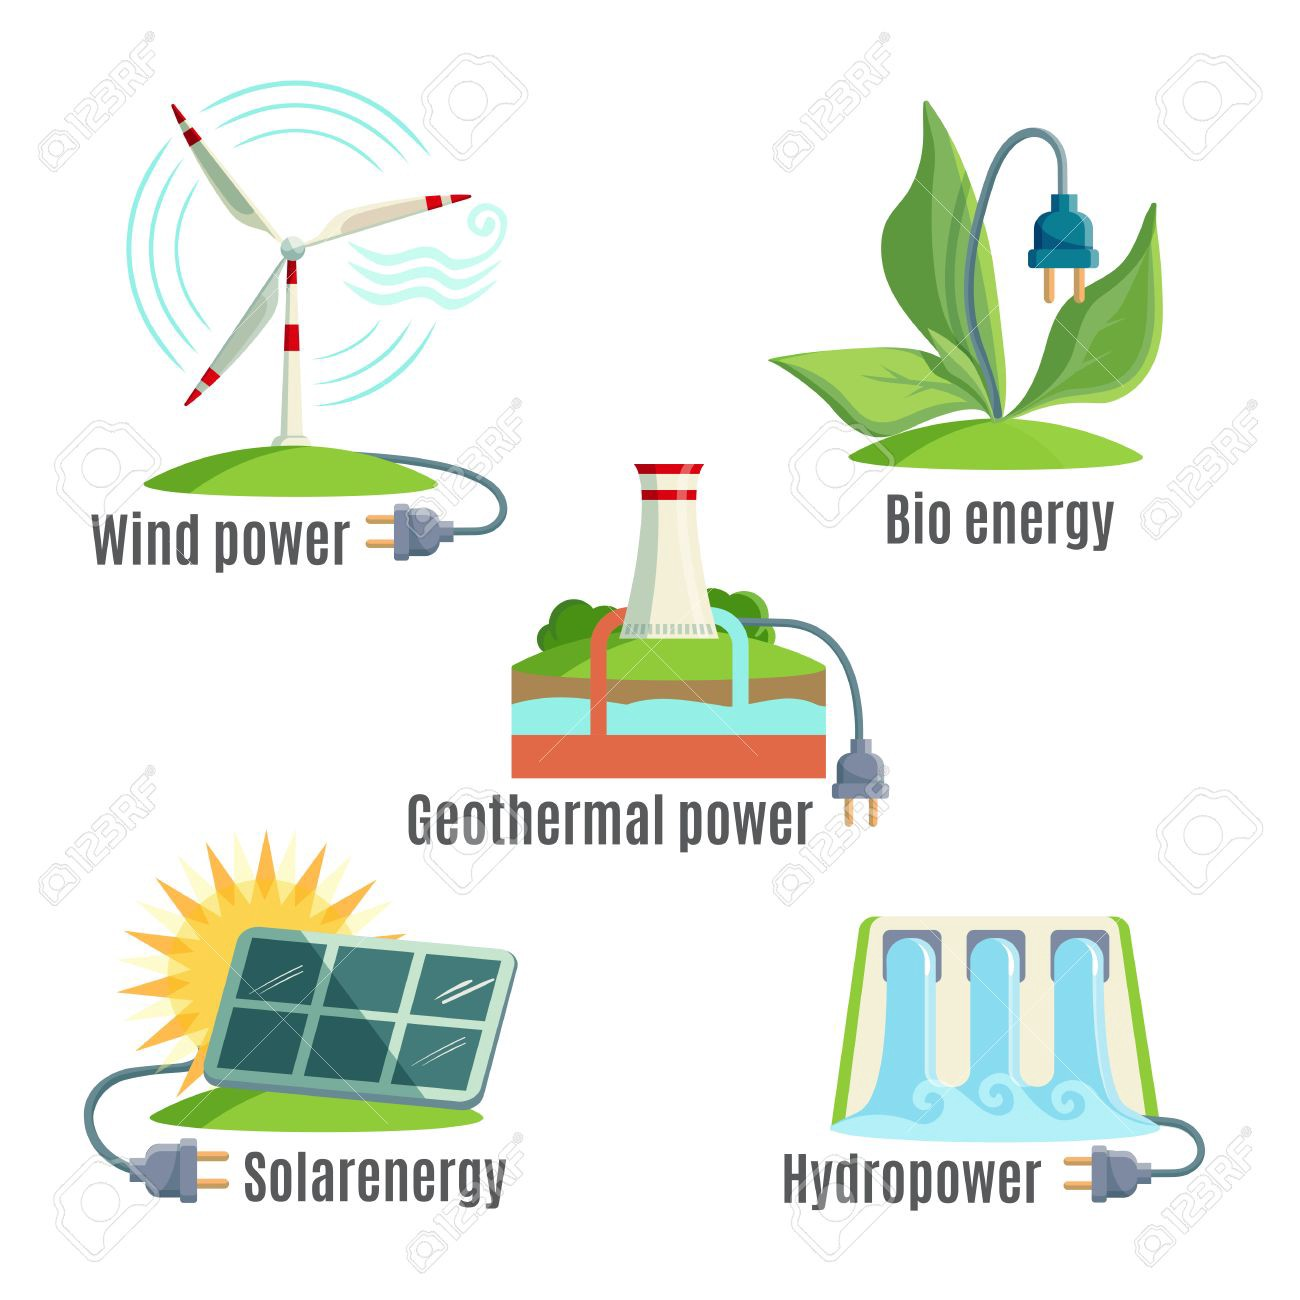 Geothermal energy for baseload power.